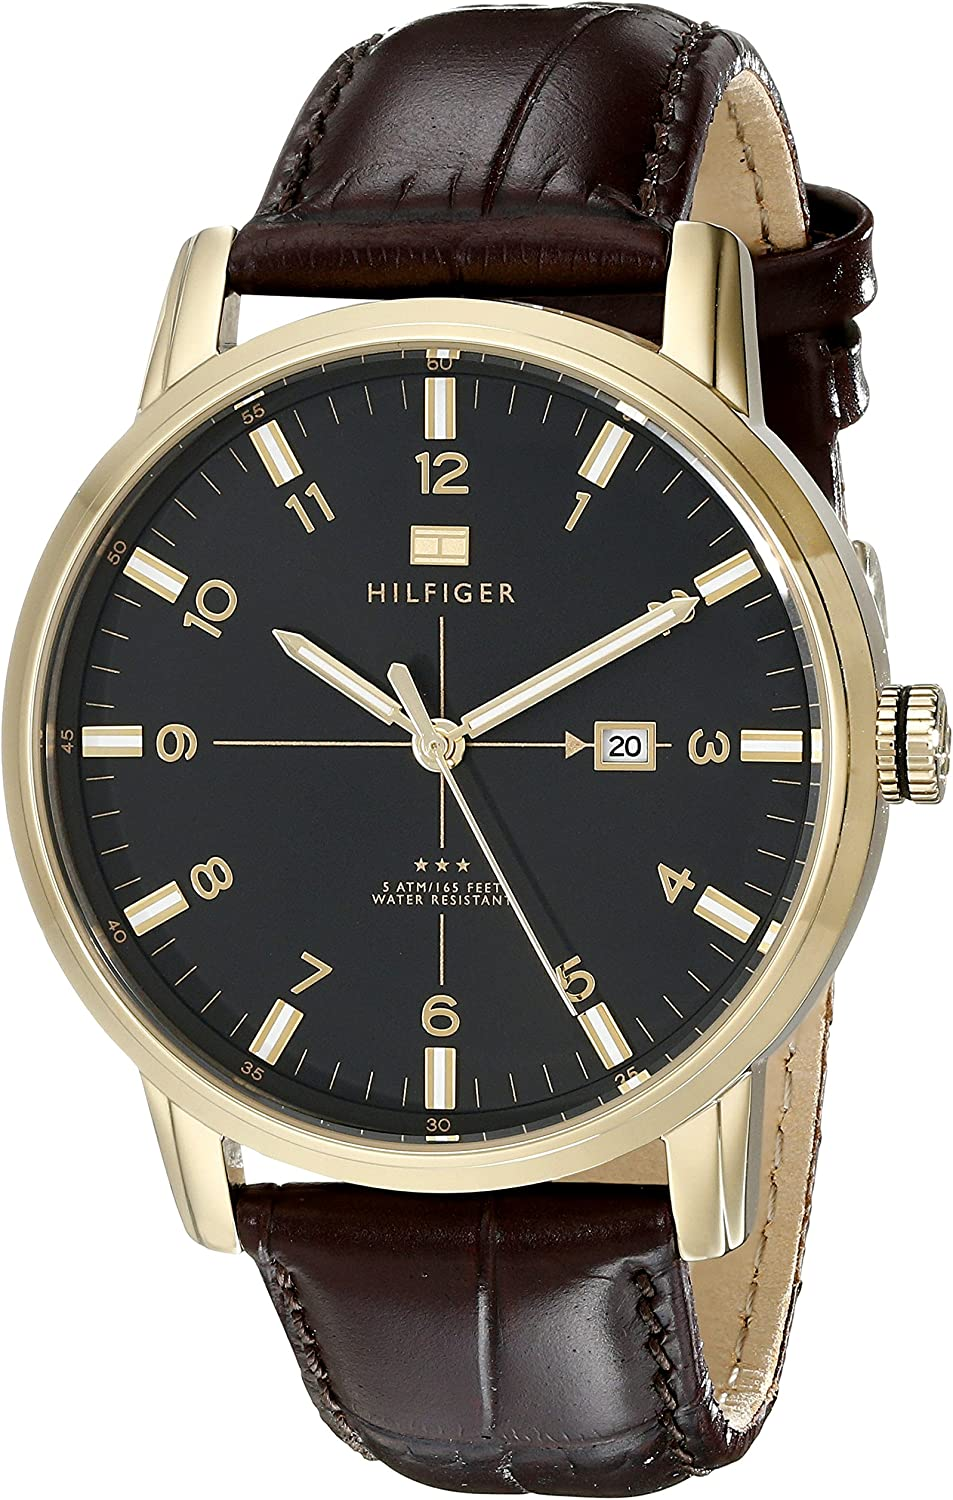 Anemone Modificare Cinematica  Tommy Hilfiger Men's 1710329 Casual Sport 3-Hand Brown Croco Leather Strap  and Gold-Plated Case Watch: Tommy Hilfiger: Amazon.ca: Watches